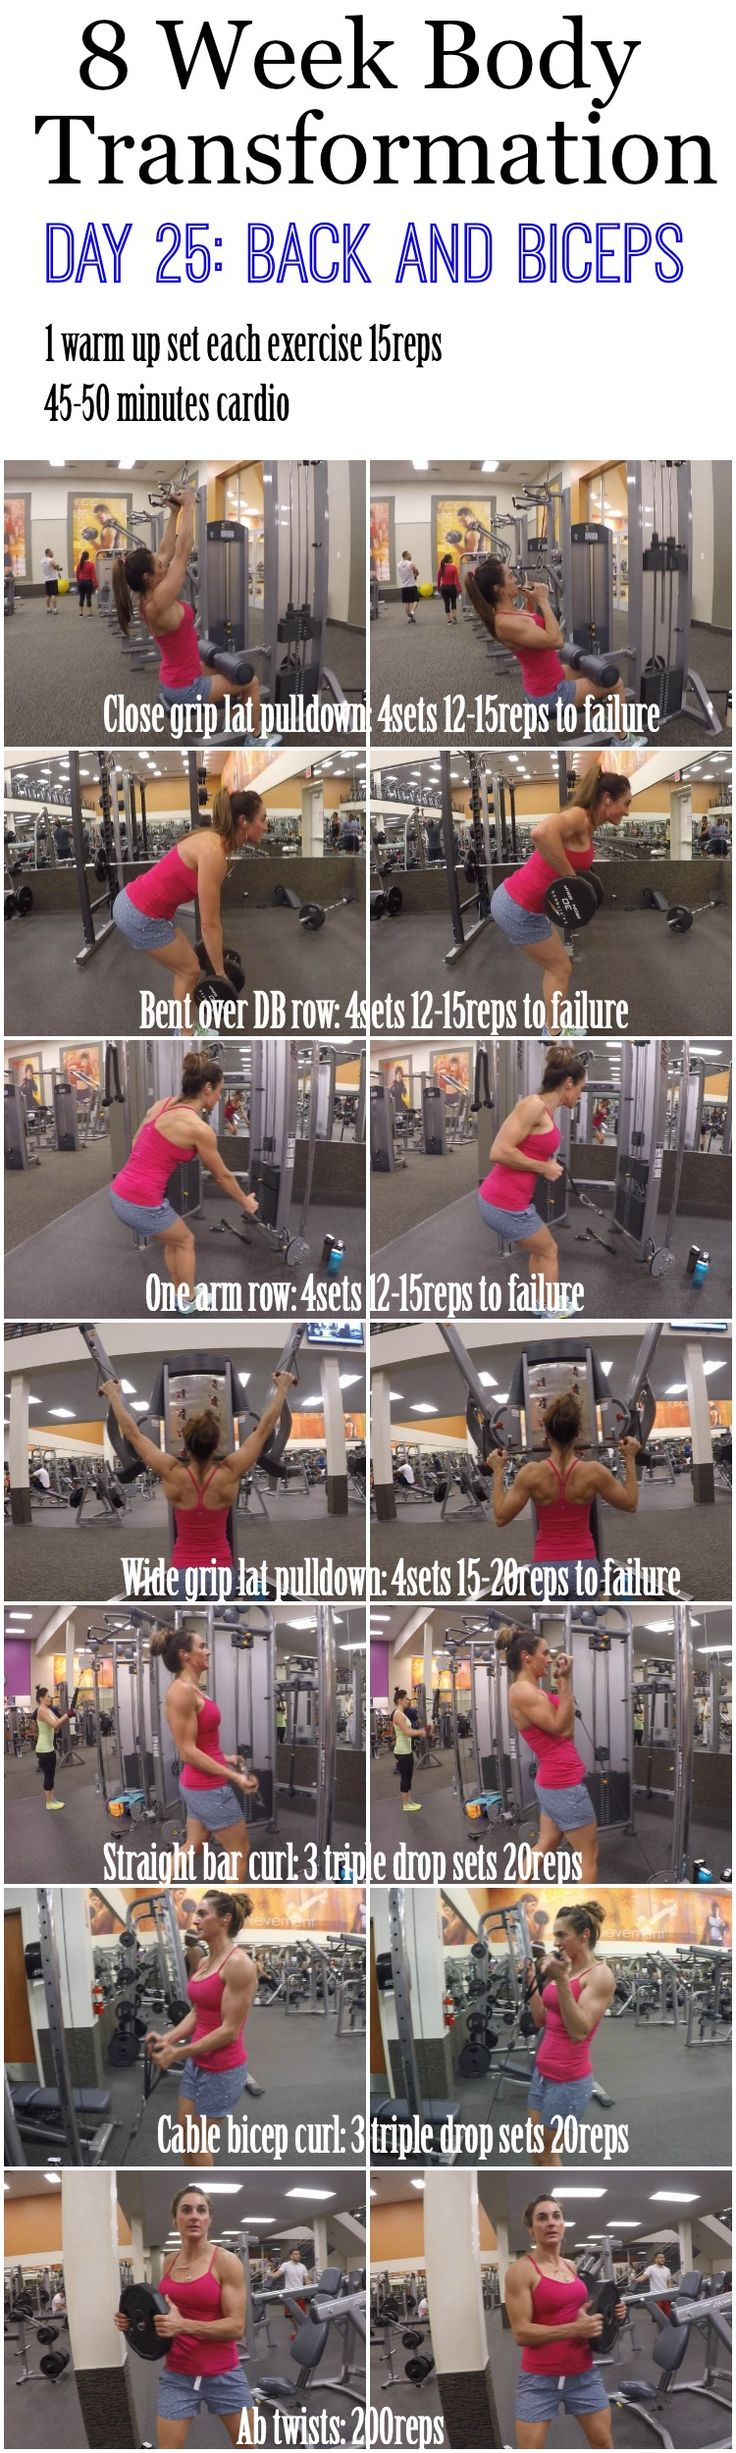 Build bigger biceps with this one trick Day 24 was an Active Rest Day so I hope you all did some good cardio, but left the weights alone! Today we are back at it, as we start Day 25 we are going to be hammering our back and biceps. We are still doing our sets to failure so push yourselves and challenge …